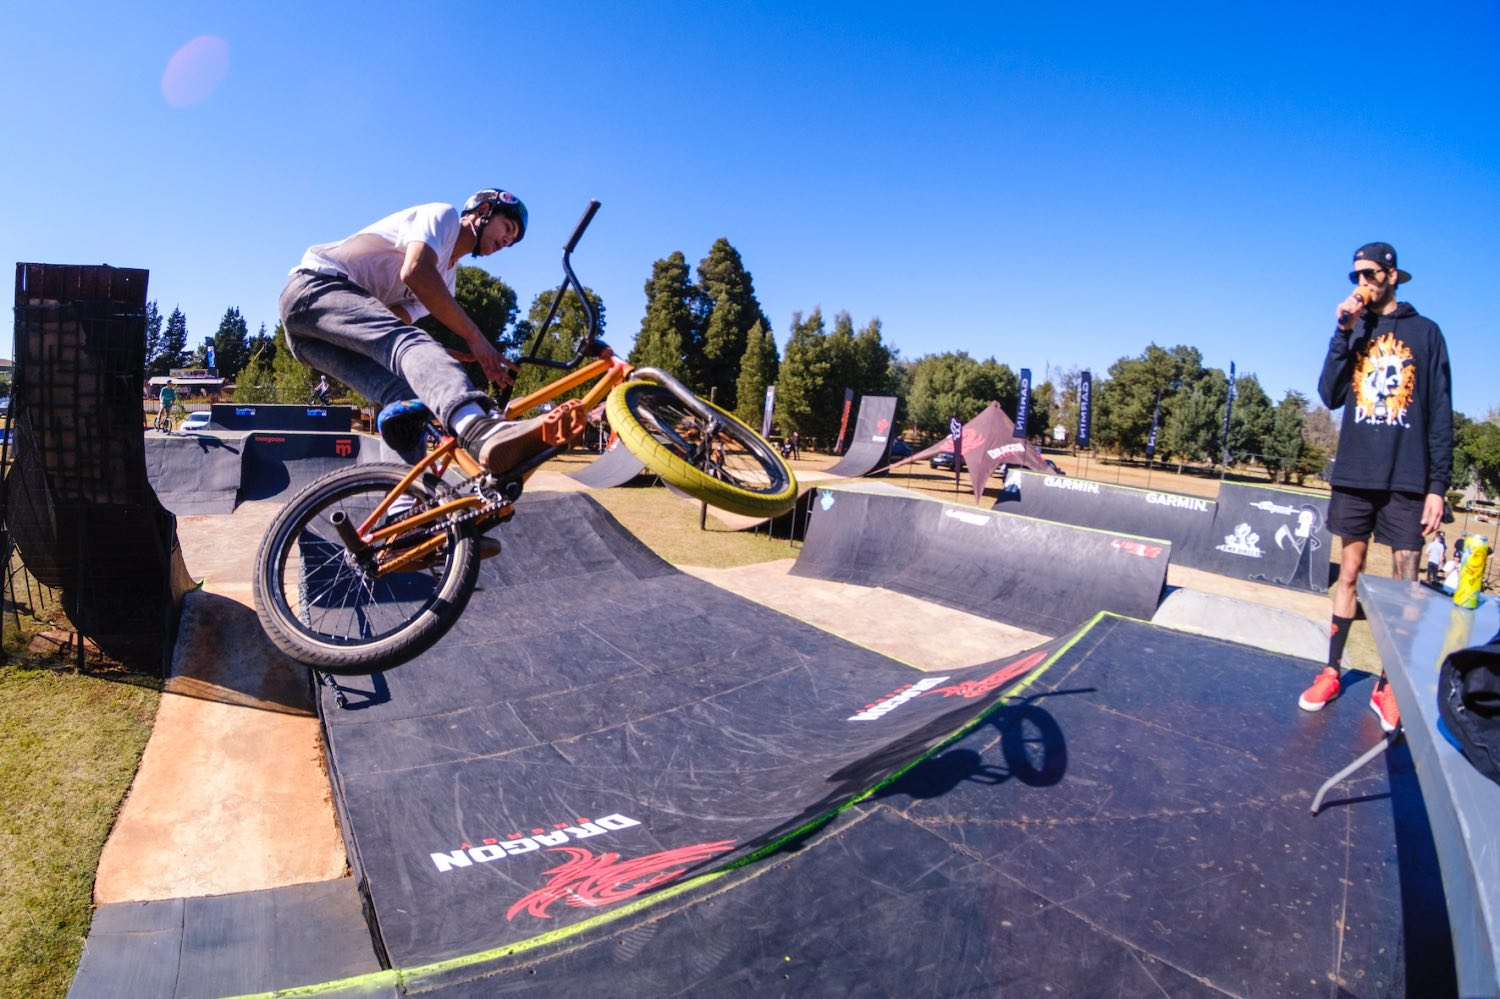 Action from the Park Lines BMX tournament